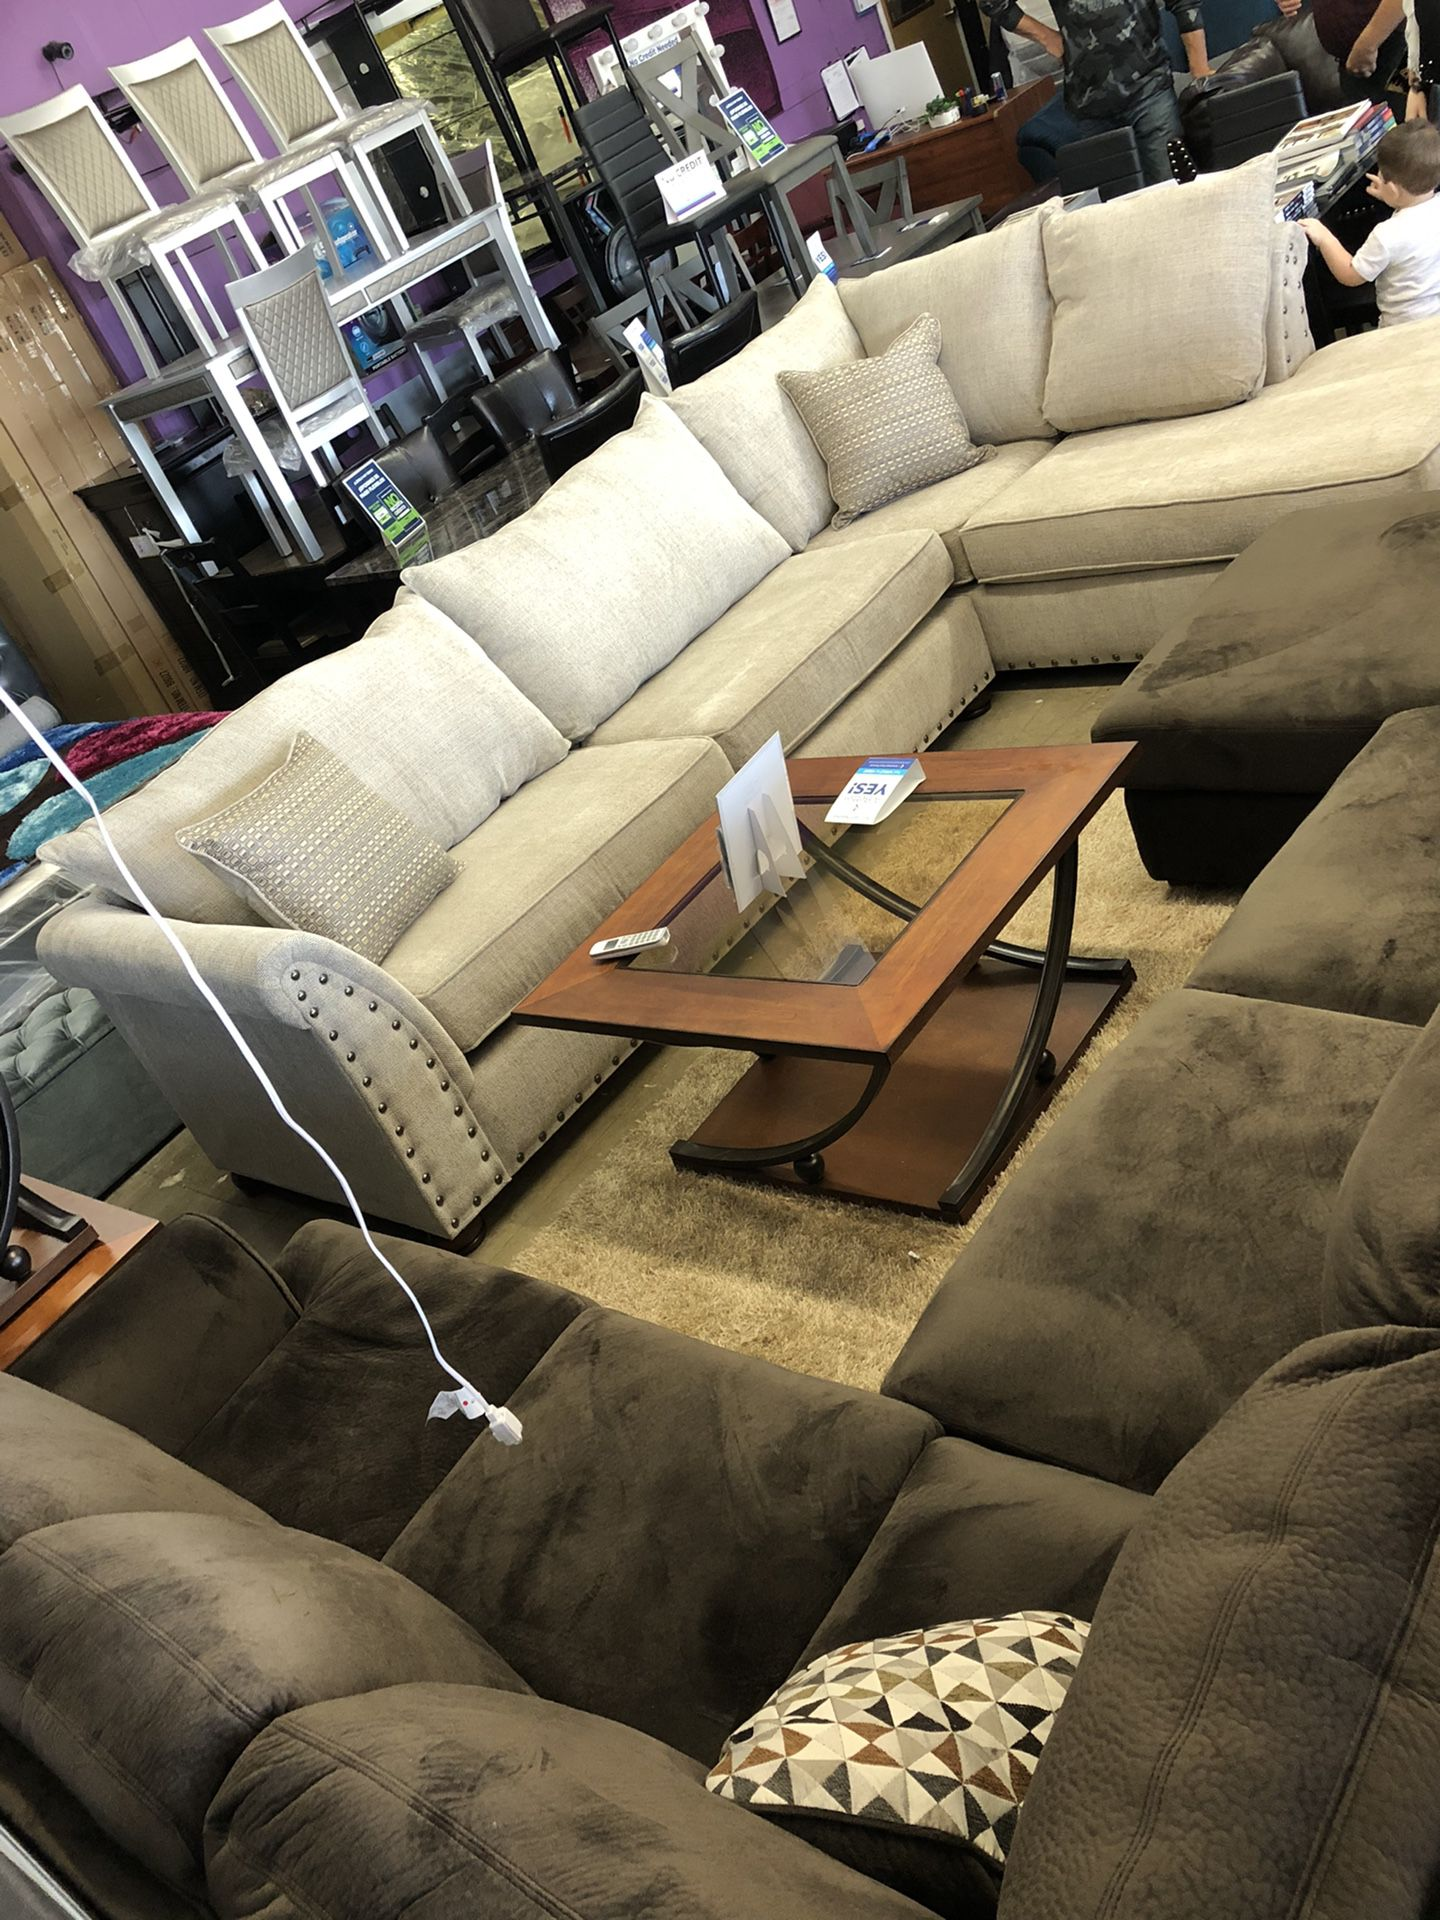 I Furniture sectional fabric. El Rio furniture finance available down payment $39 1456 belt line rd suite 121 Garland tx 75044 Open from 9:30-8:00